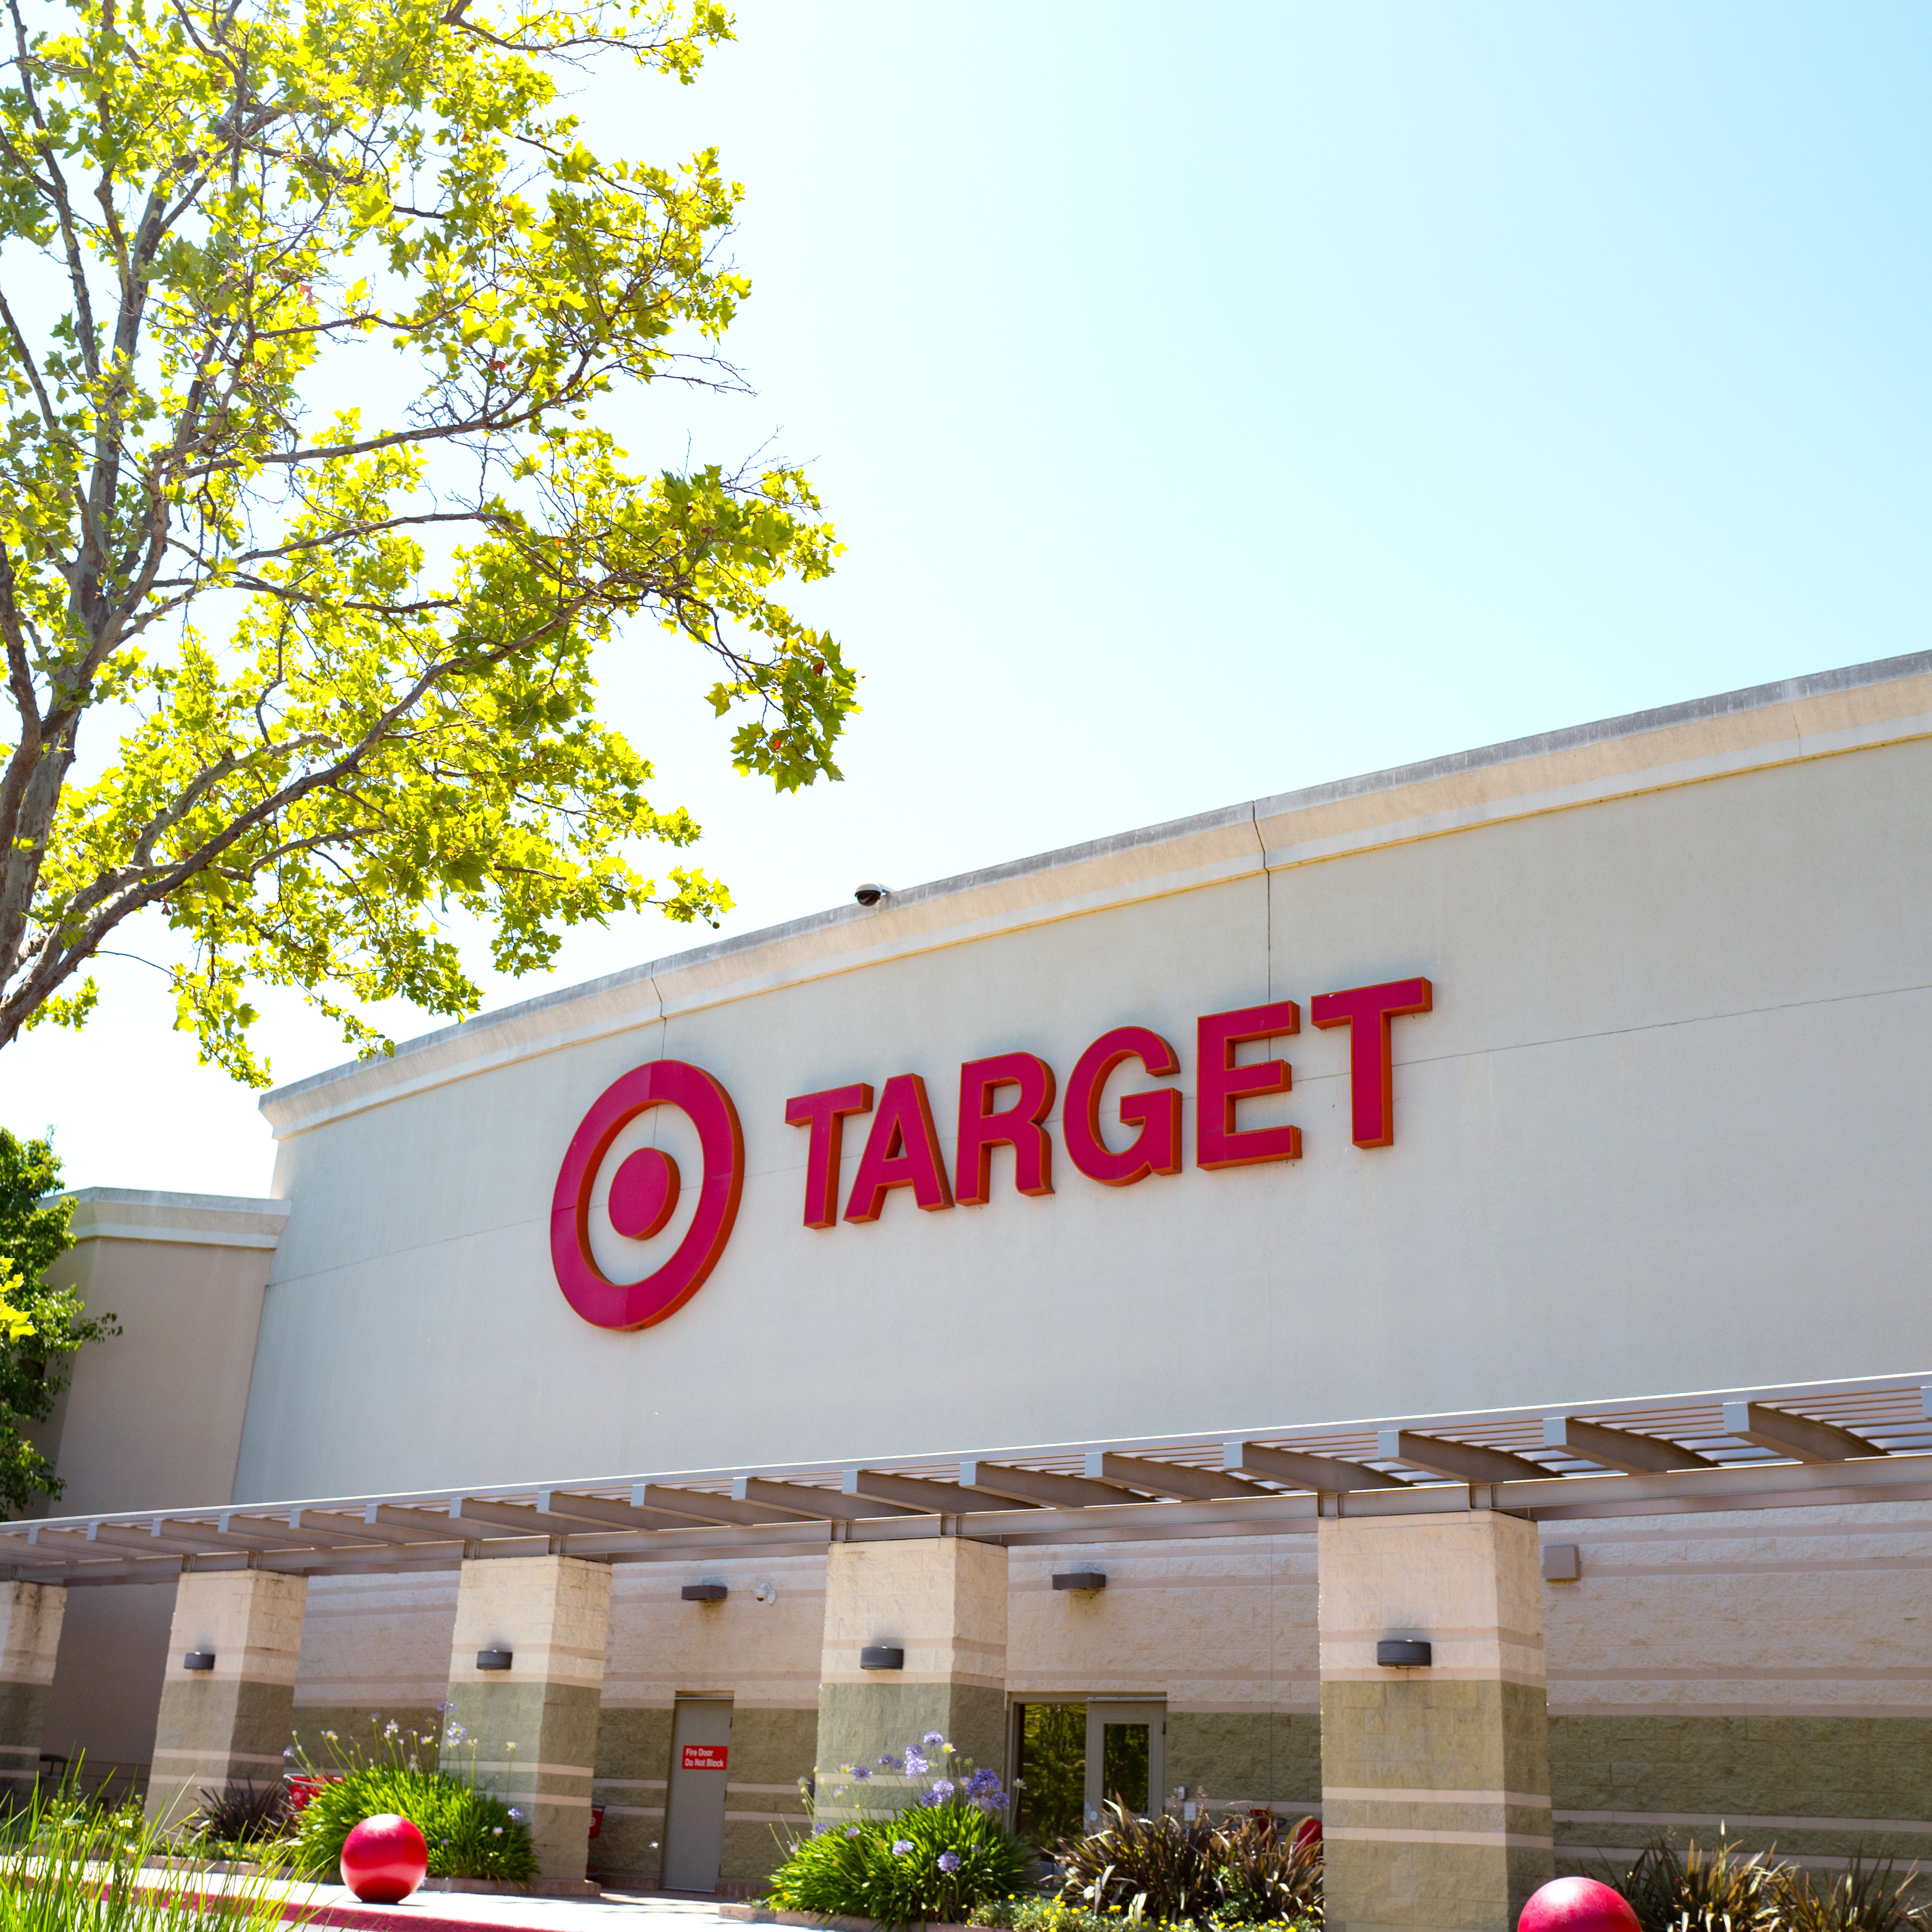 Target's Cyber Monday sales just became a whole week's worth of bargains